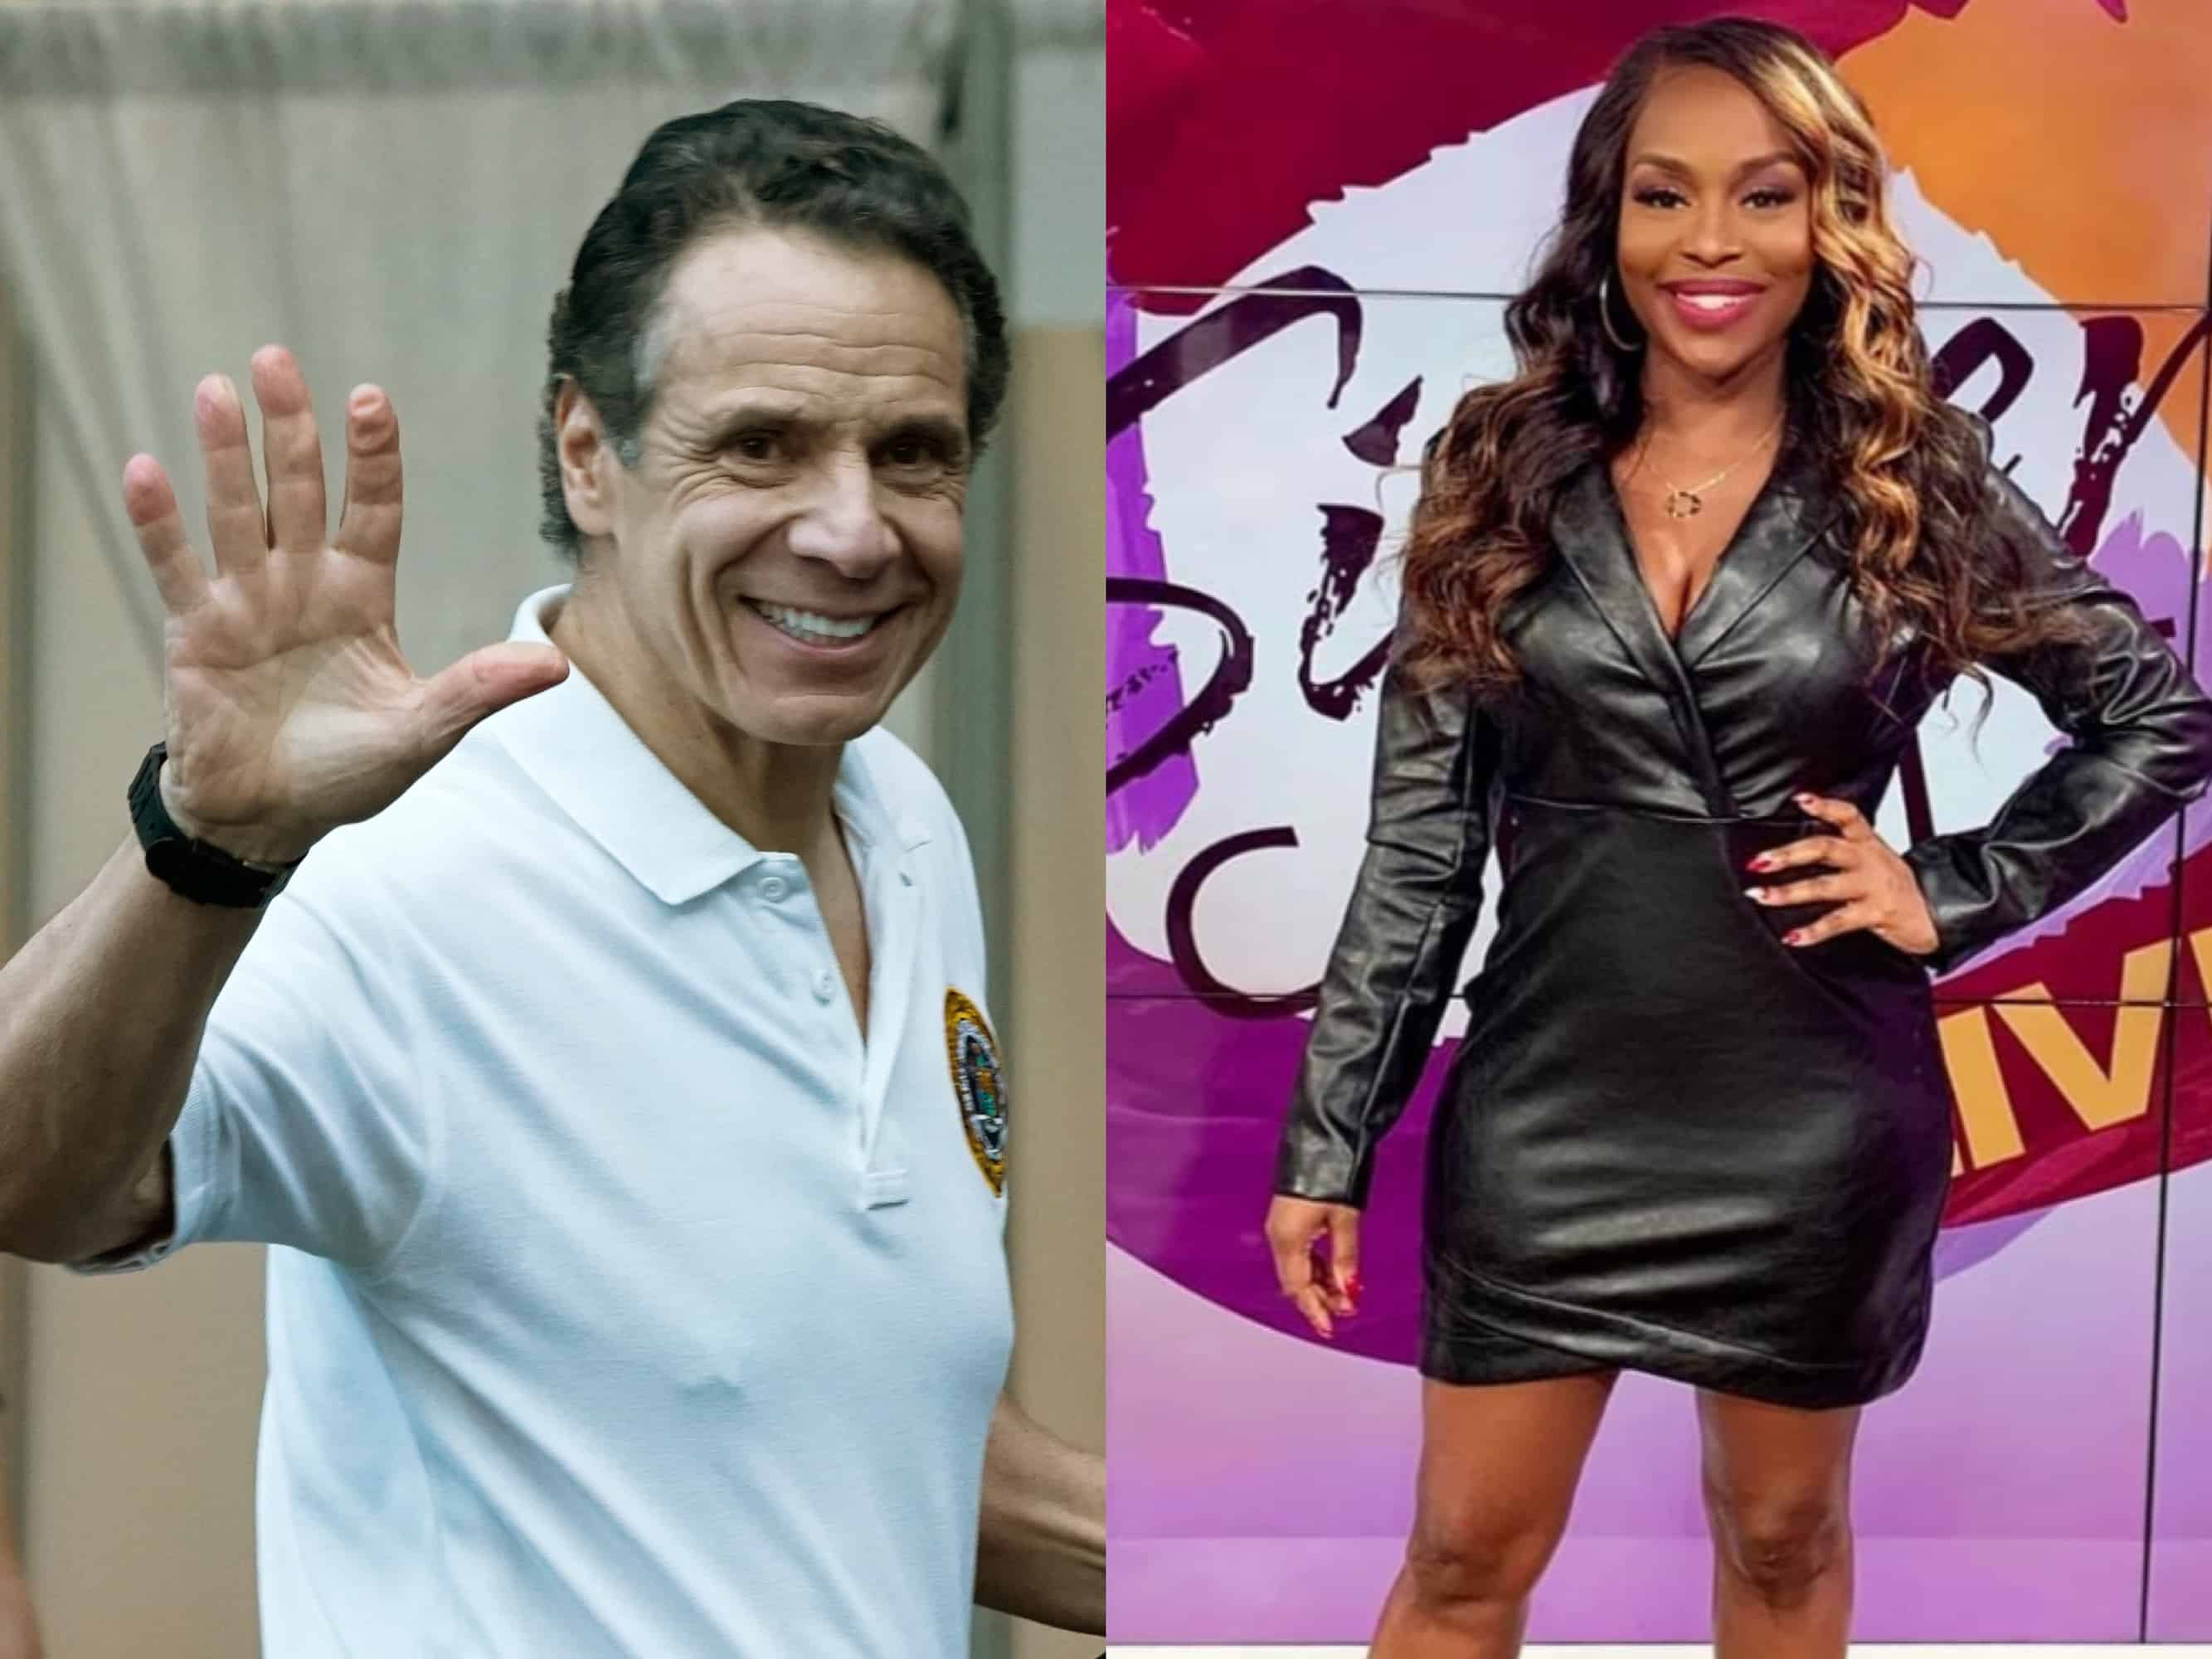 Quad Webb made a video and posted on social media to let Governor Andrew Cuomo that she has admired his work and that she's interested in him.